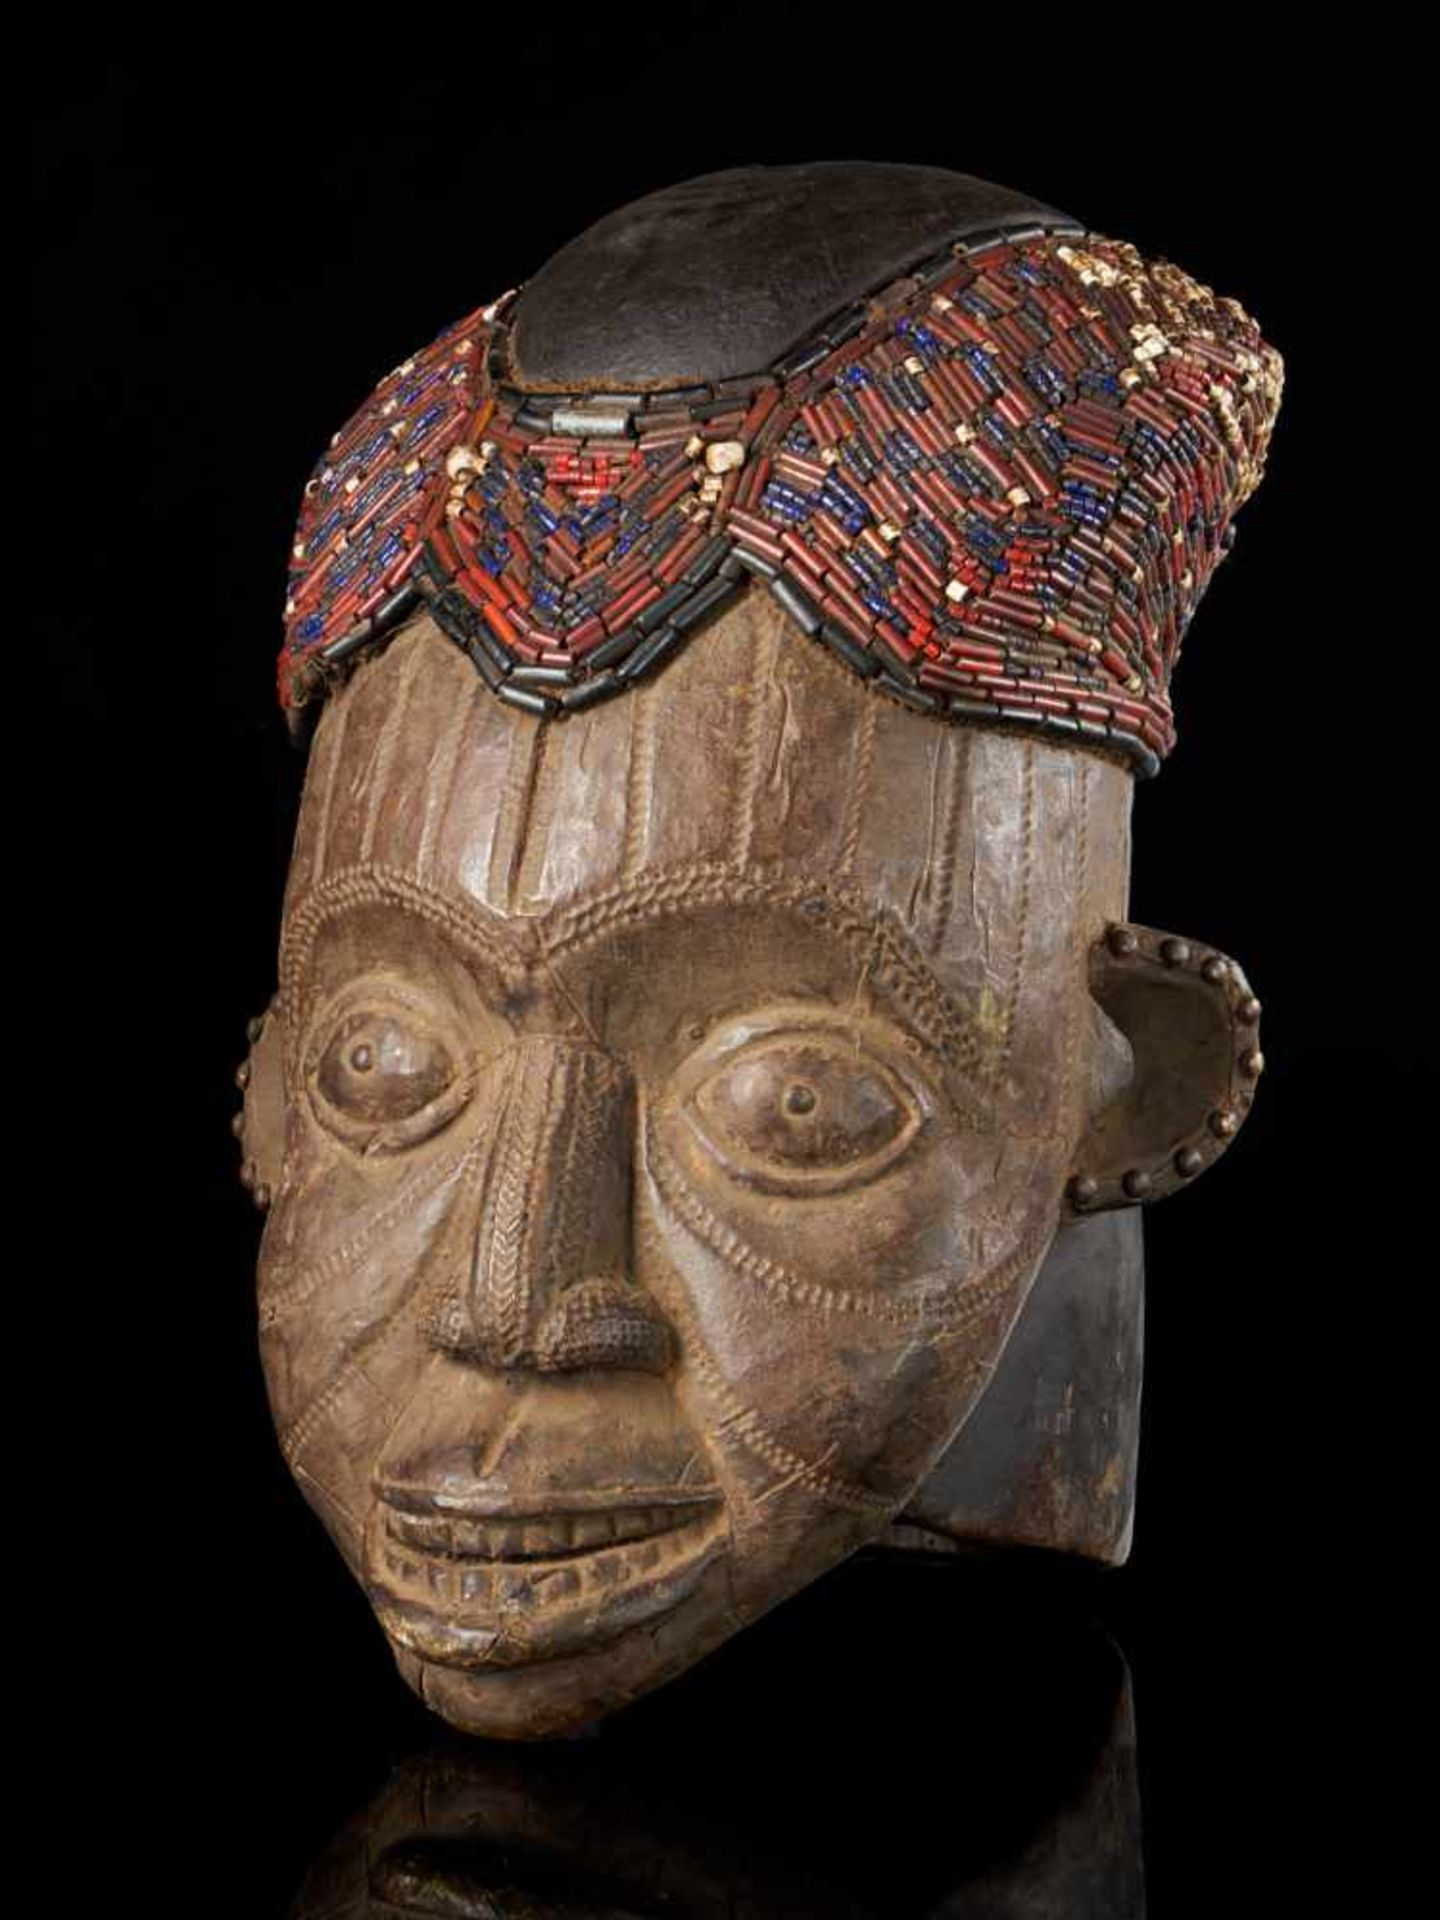 Beaded Helmet Mask - Copper Covered Face - Tribal ArtThis gorgeous wooden mask is detailed with a